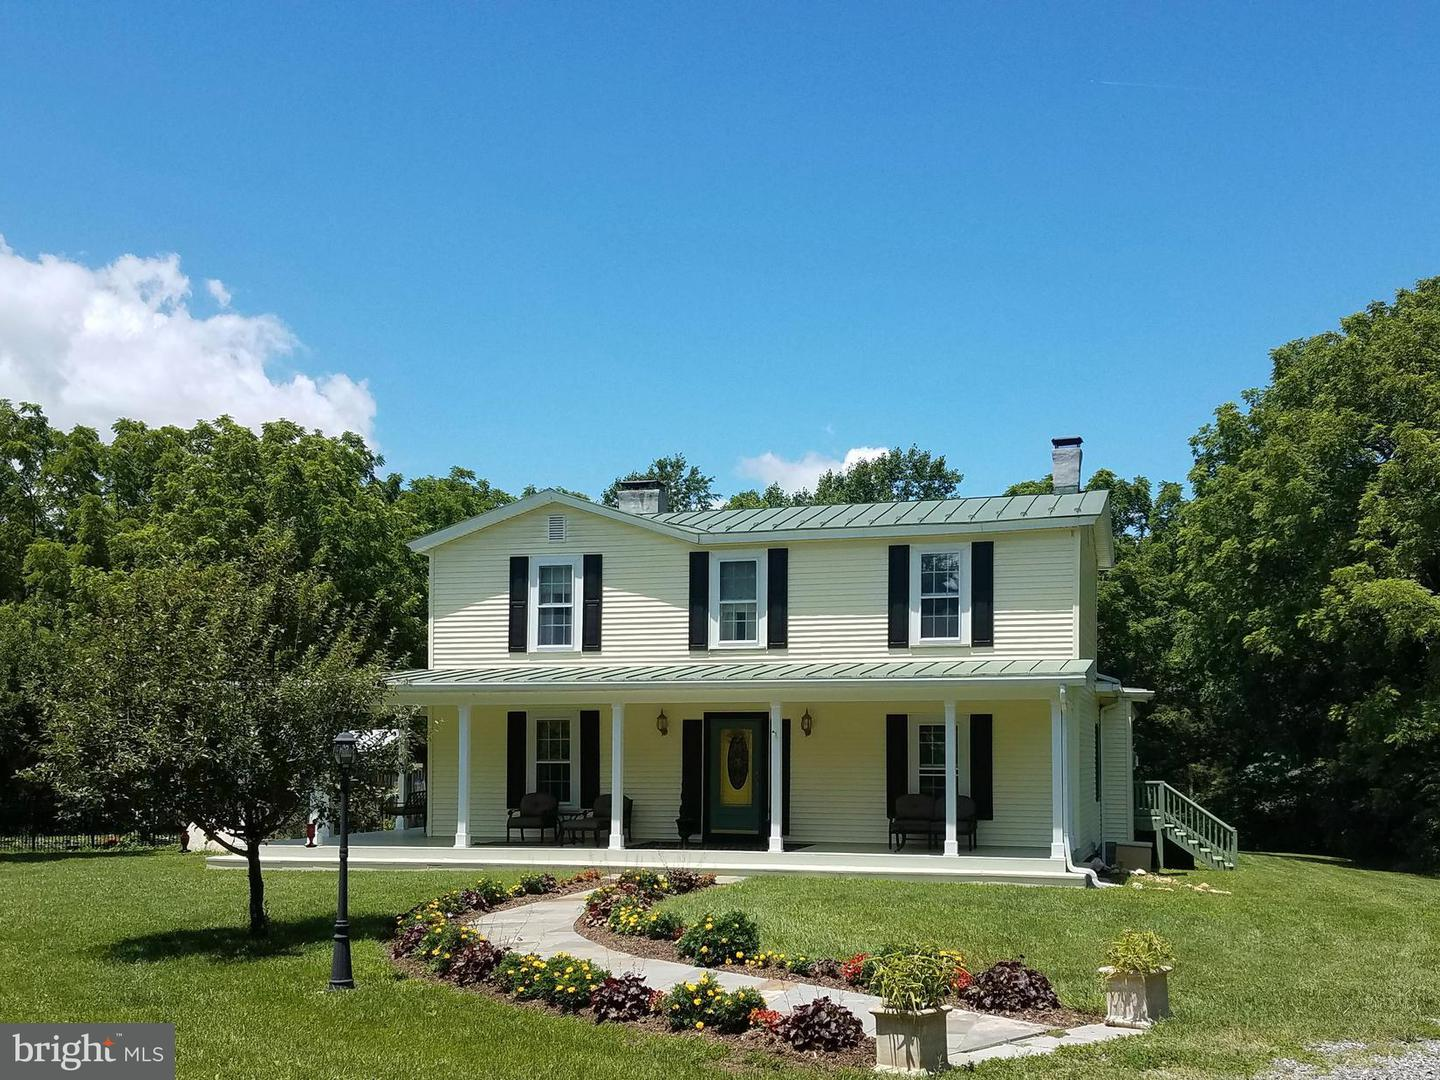 Additional photo for property listing at 1351 Spring Rd  Mineral, Virginia 23117 United States